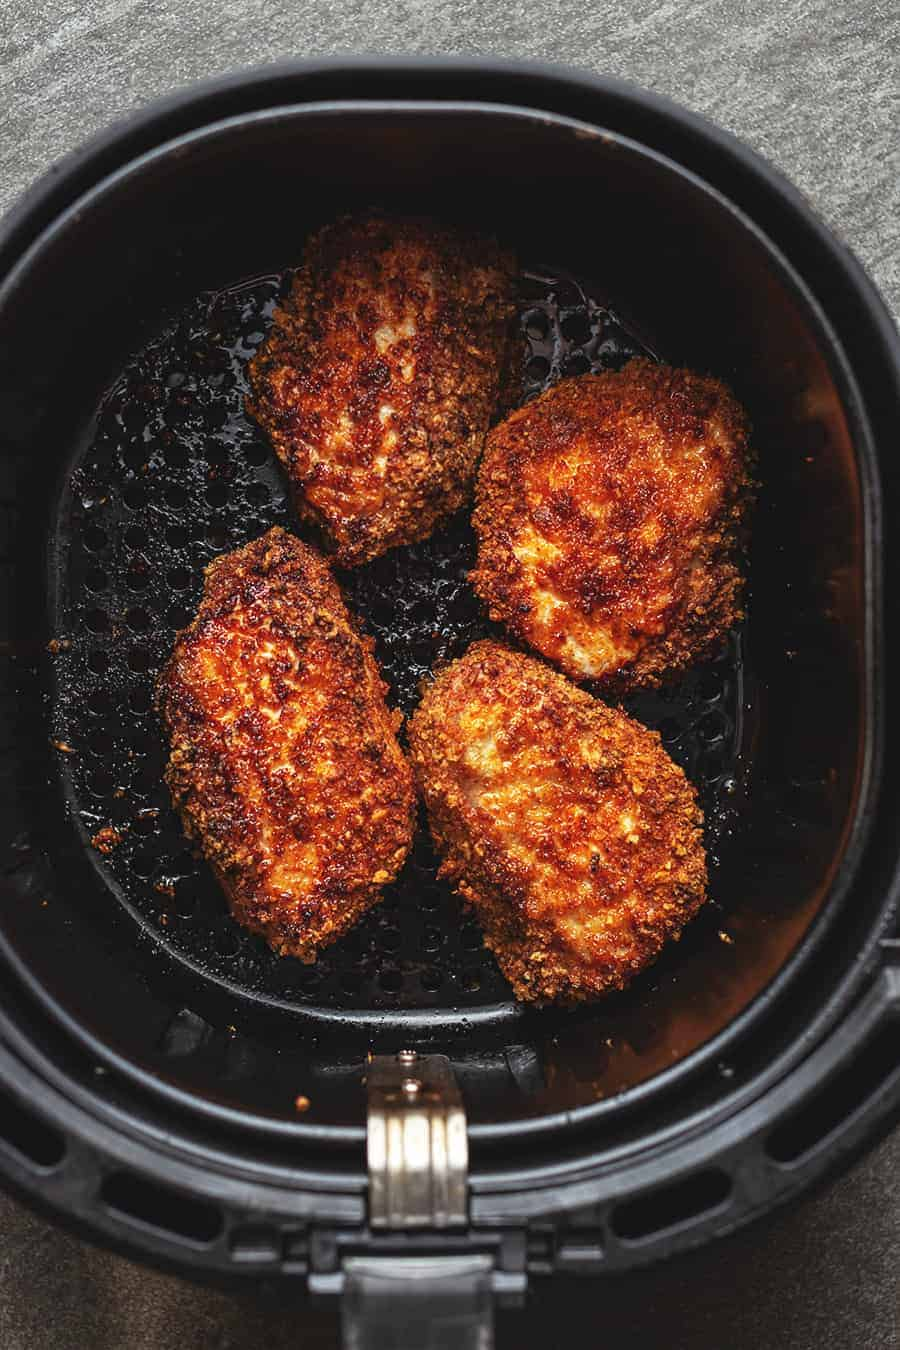 How to make sausage patties in the air fryer